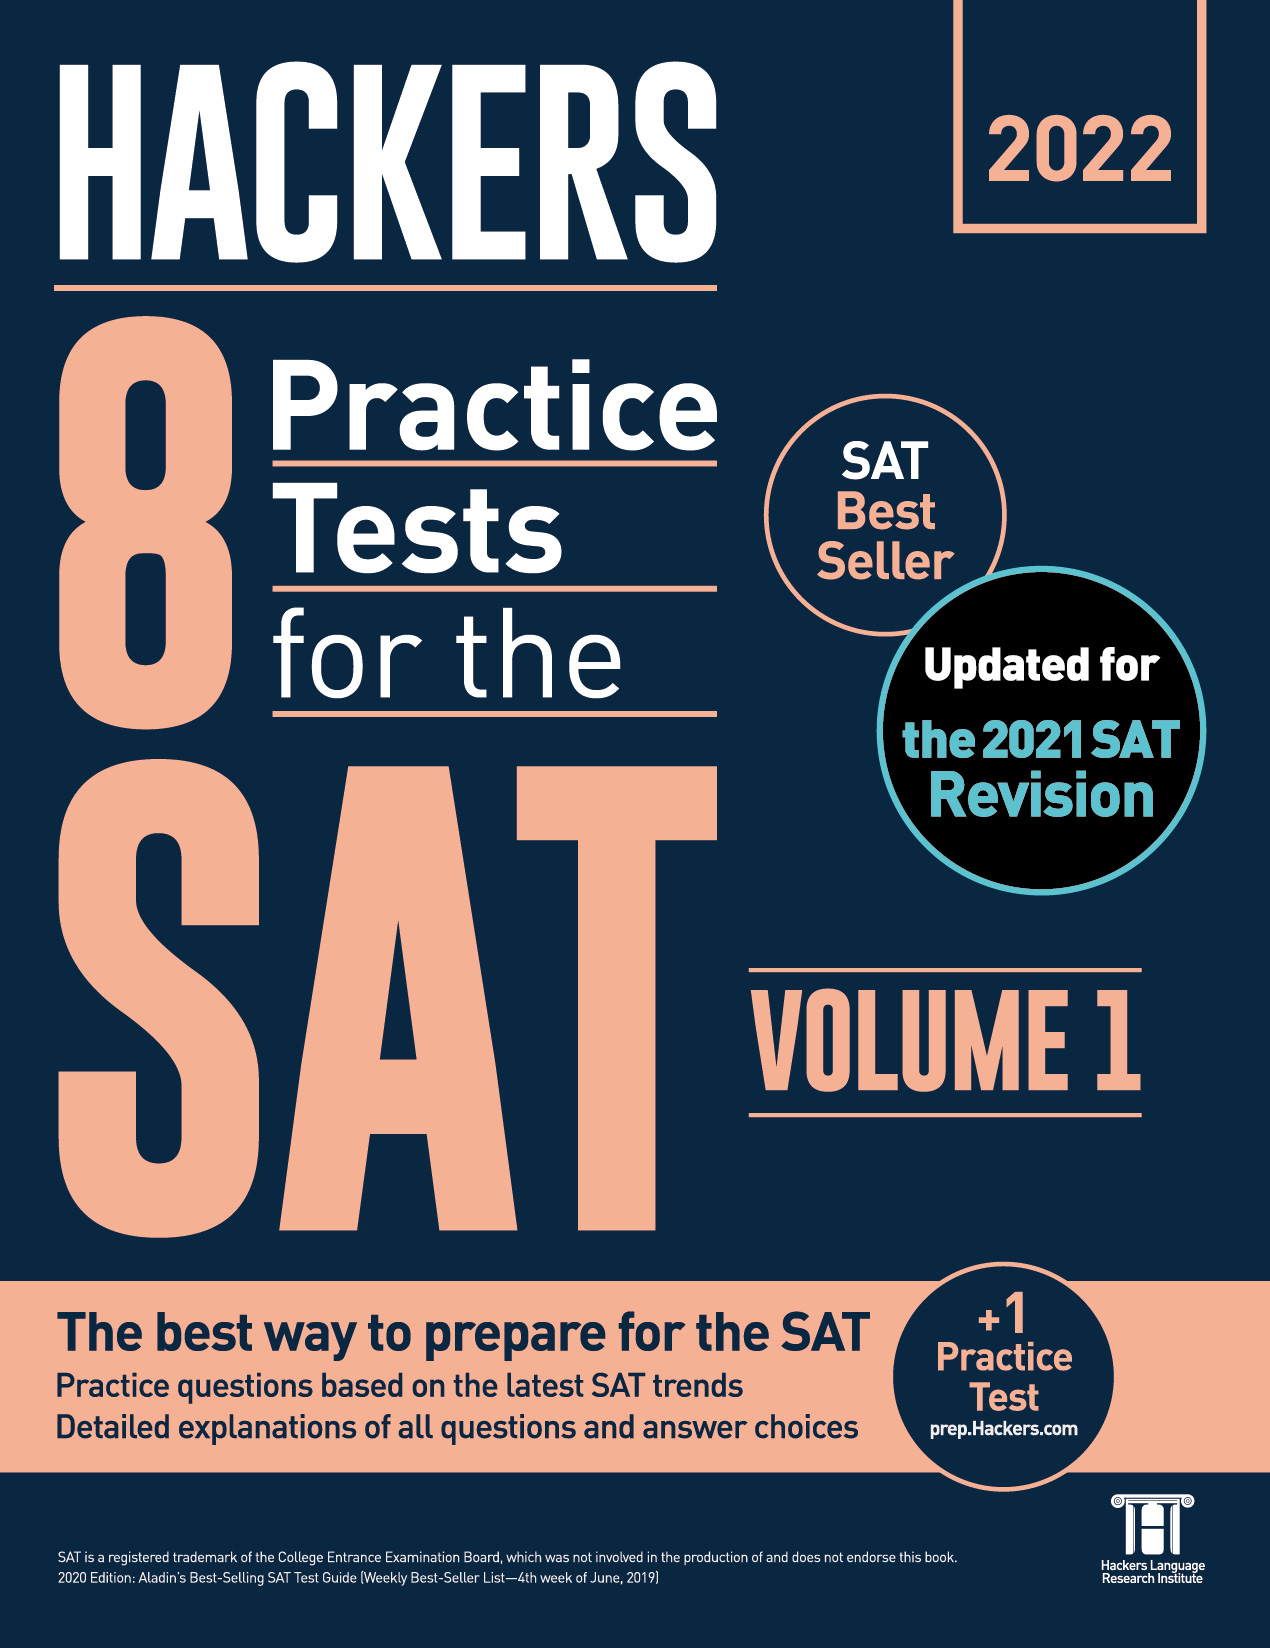 Hackers 8 Practice Tests for the SAT Volume 1